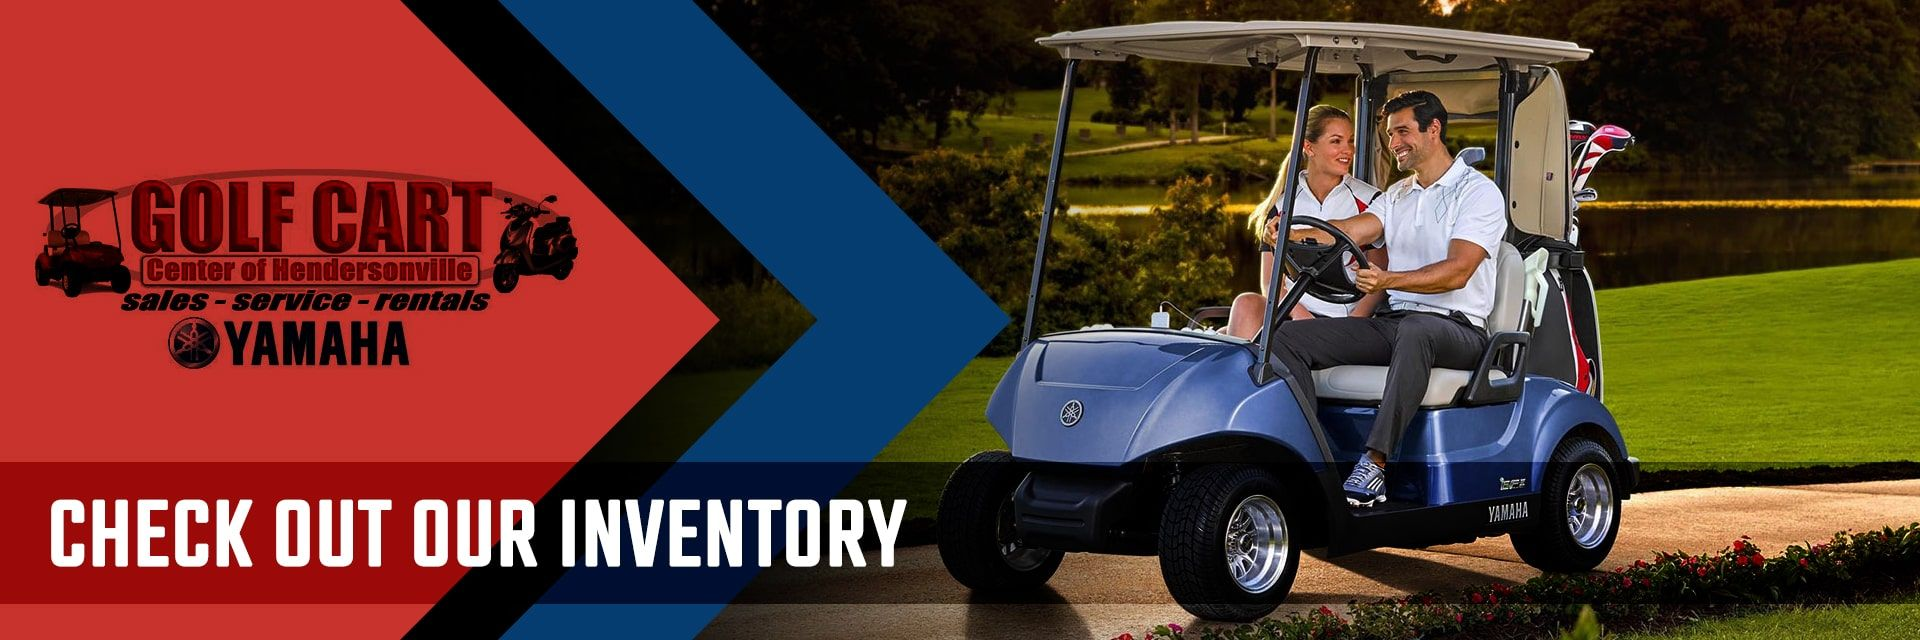 Full line up inventory at Golf Cart Center of Hendersonville, NC